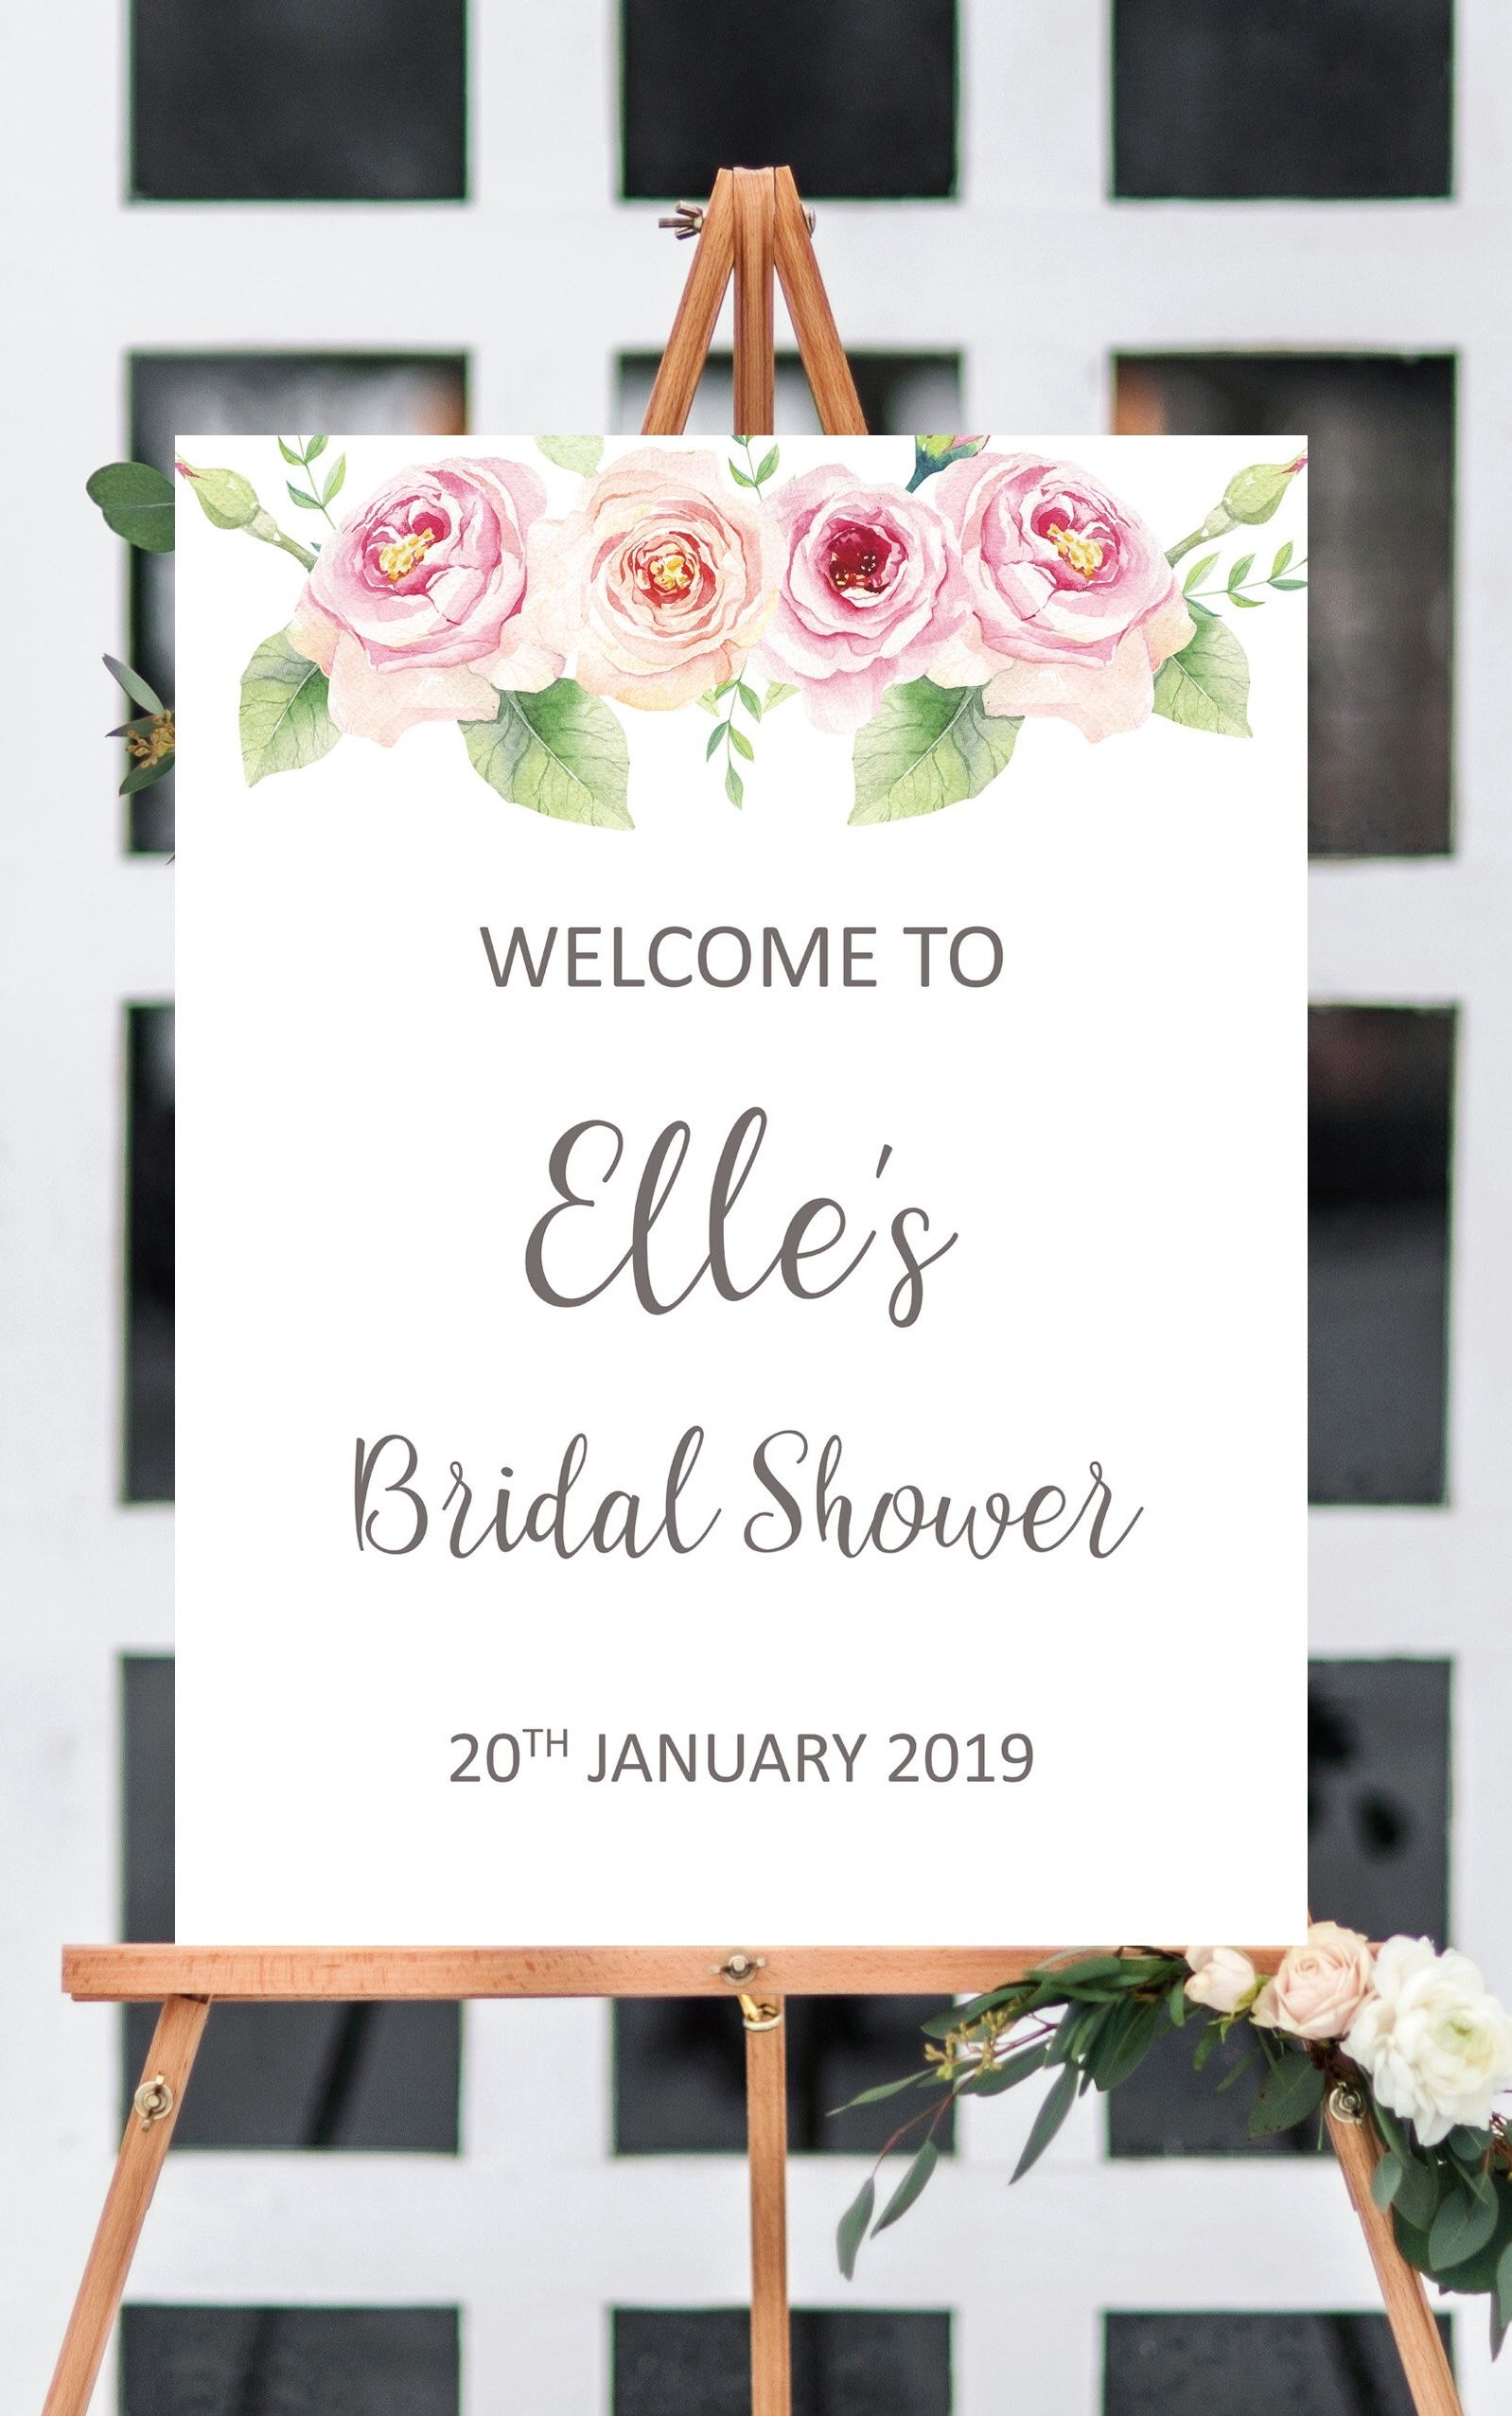 Wedding decorations for outside january 2019 Floral bridal shower welcome sign printable bridal shower